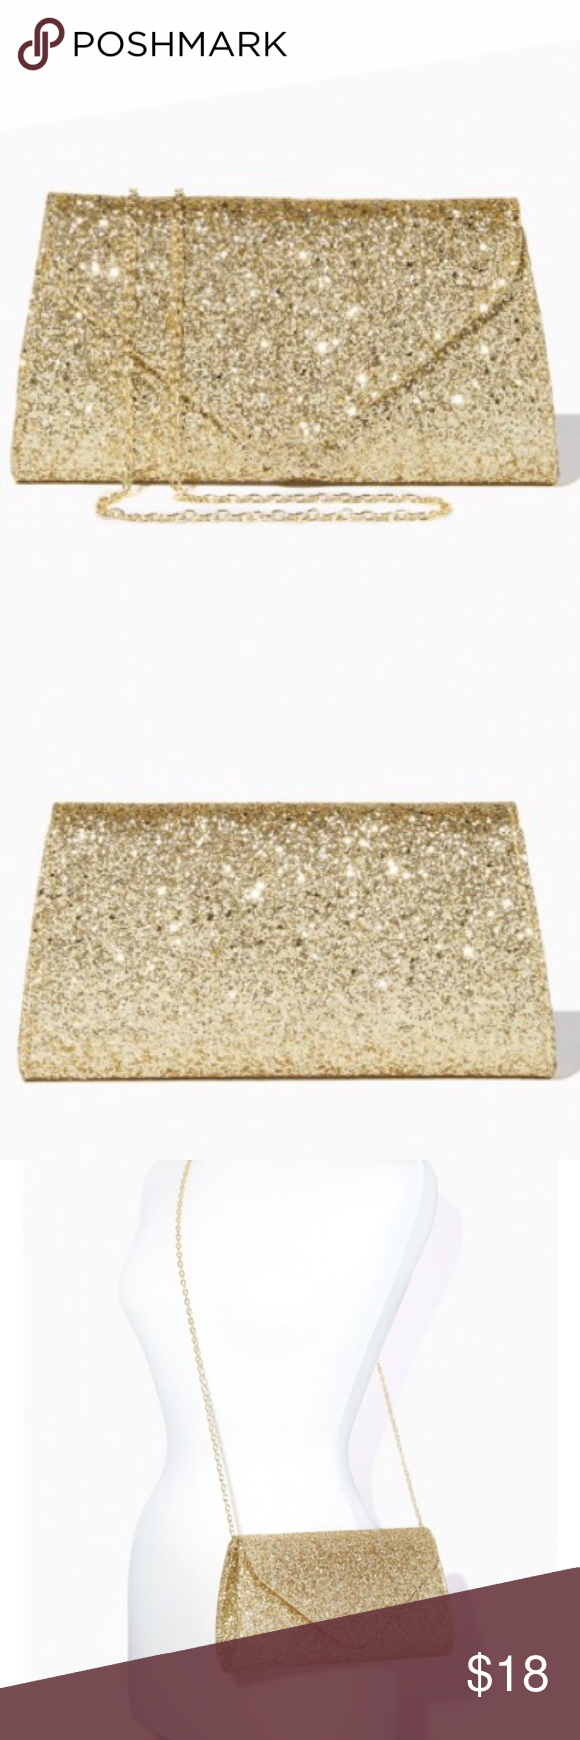 """Gold Glitter Crush Envelope Clutch Make every special occasion a glamorous one with this fold-over clutch with sparkling glitter. Comes with detachable shoulder strap. Used once for less than an hour. Like new! Measures 10""""x5.5""""x2"""" Charming Charlie Bags Clutches & Wristlets"""